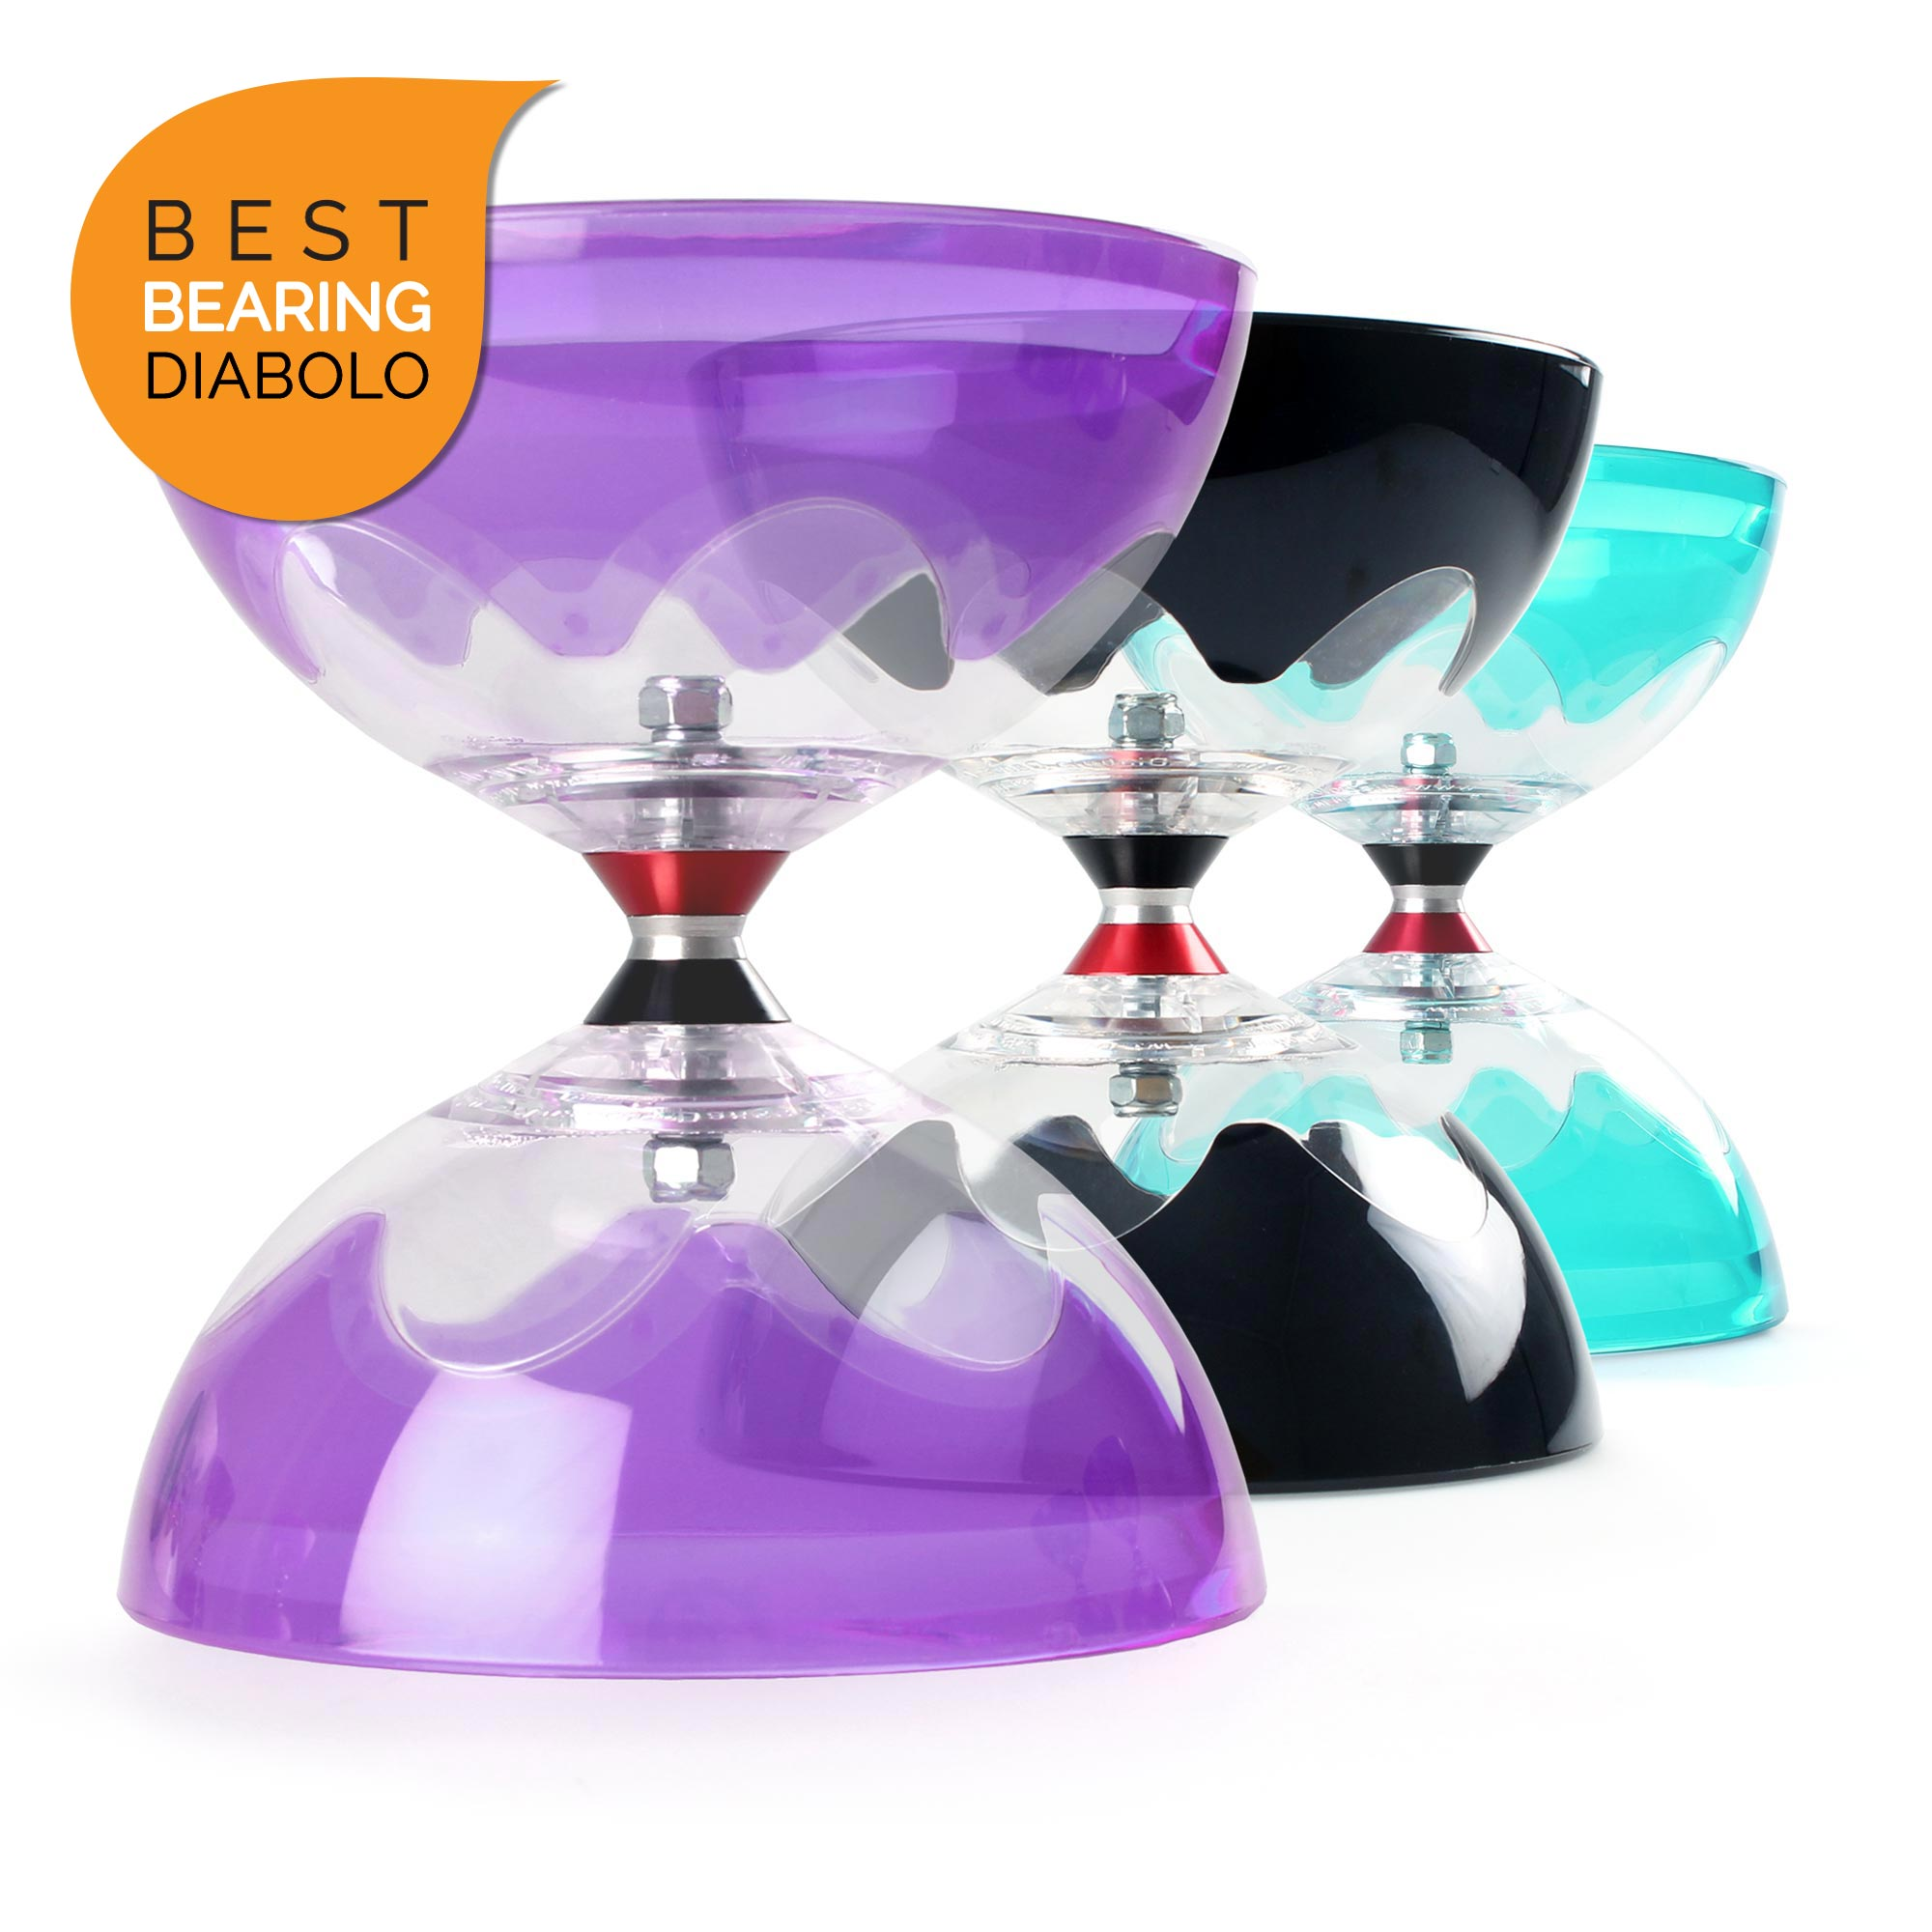 HyperSpin T and TC Triple Bearing Diabolos - The Best Large Bearing Axle Diabolo